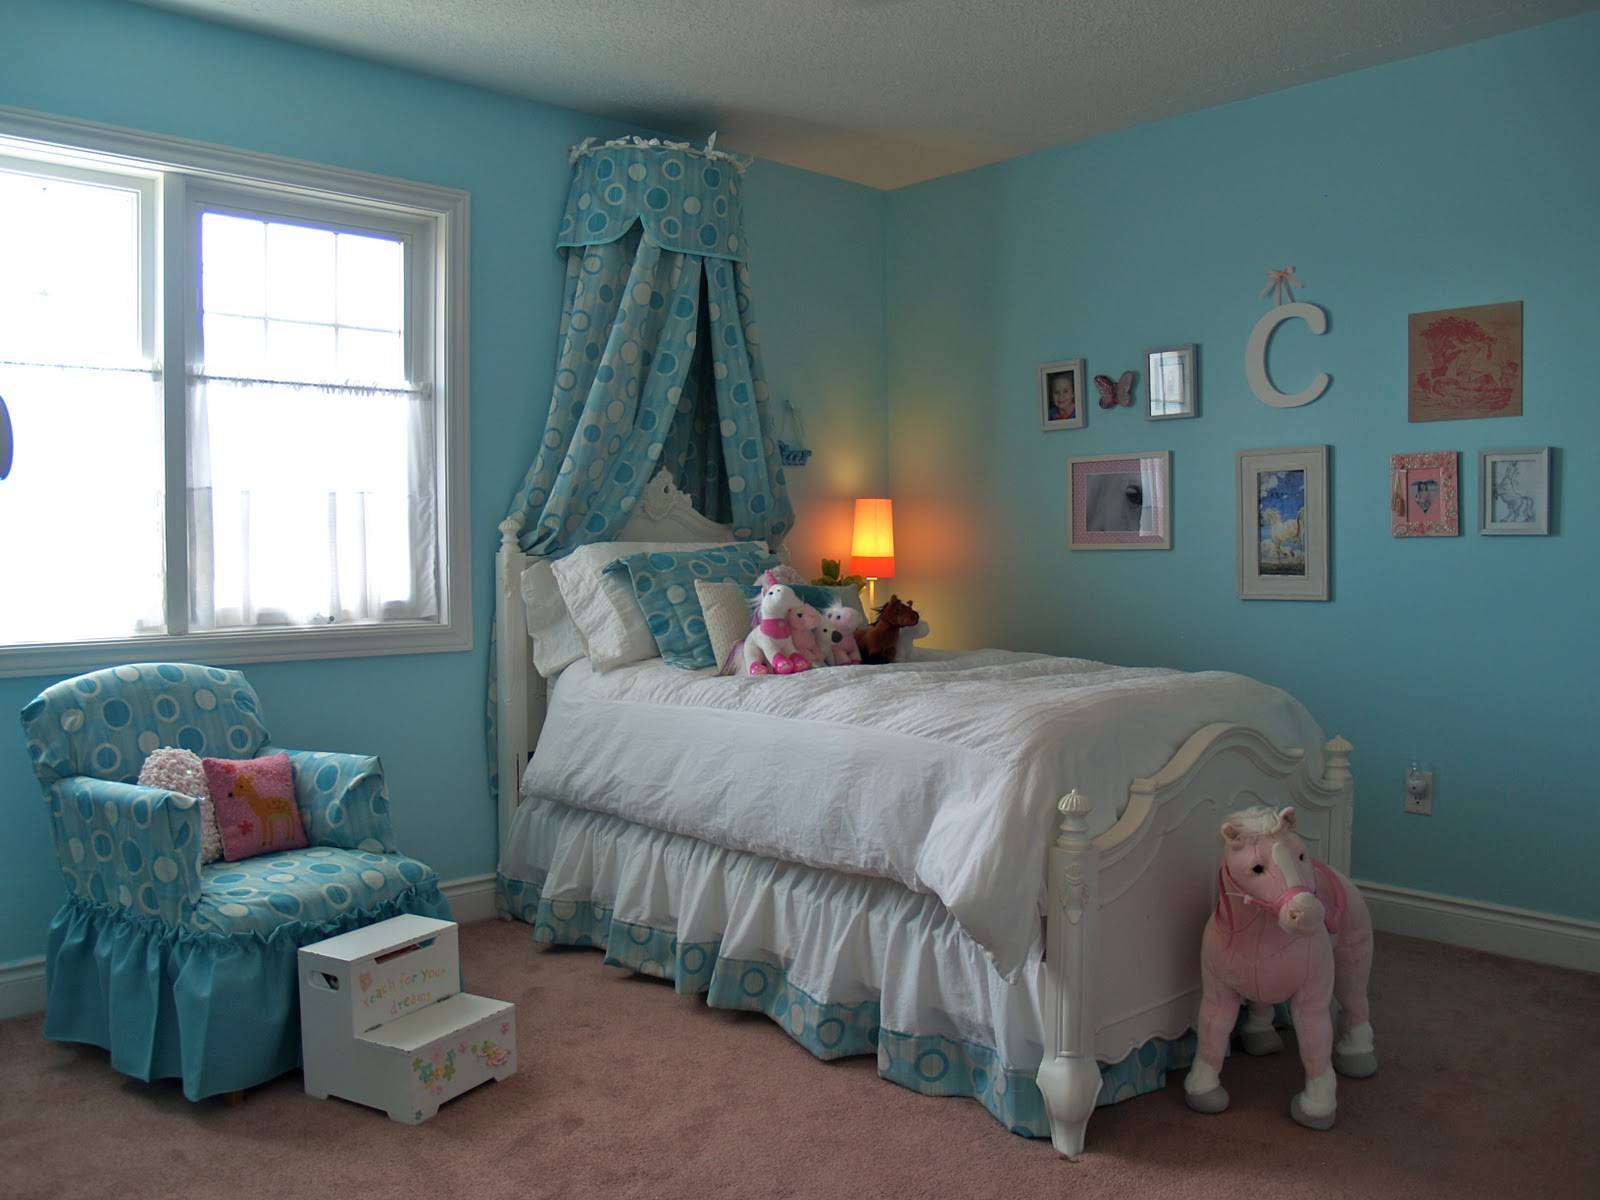 10 rooms coco 39 s room turquoise and pink and horse love - Turquoise and pink bedroom ...